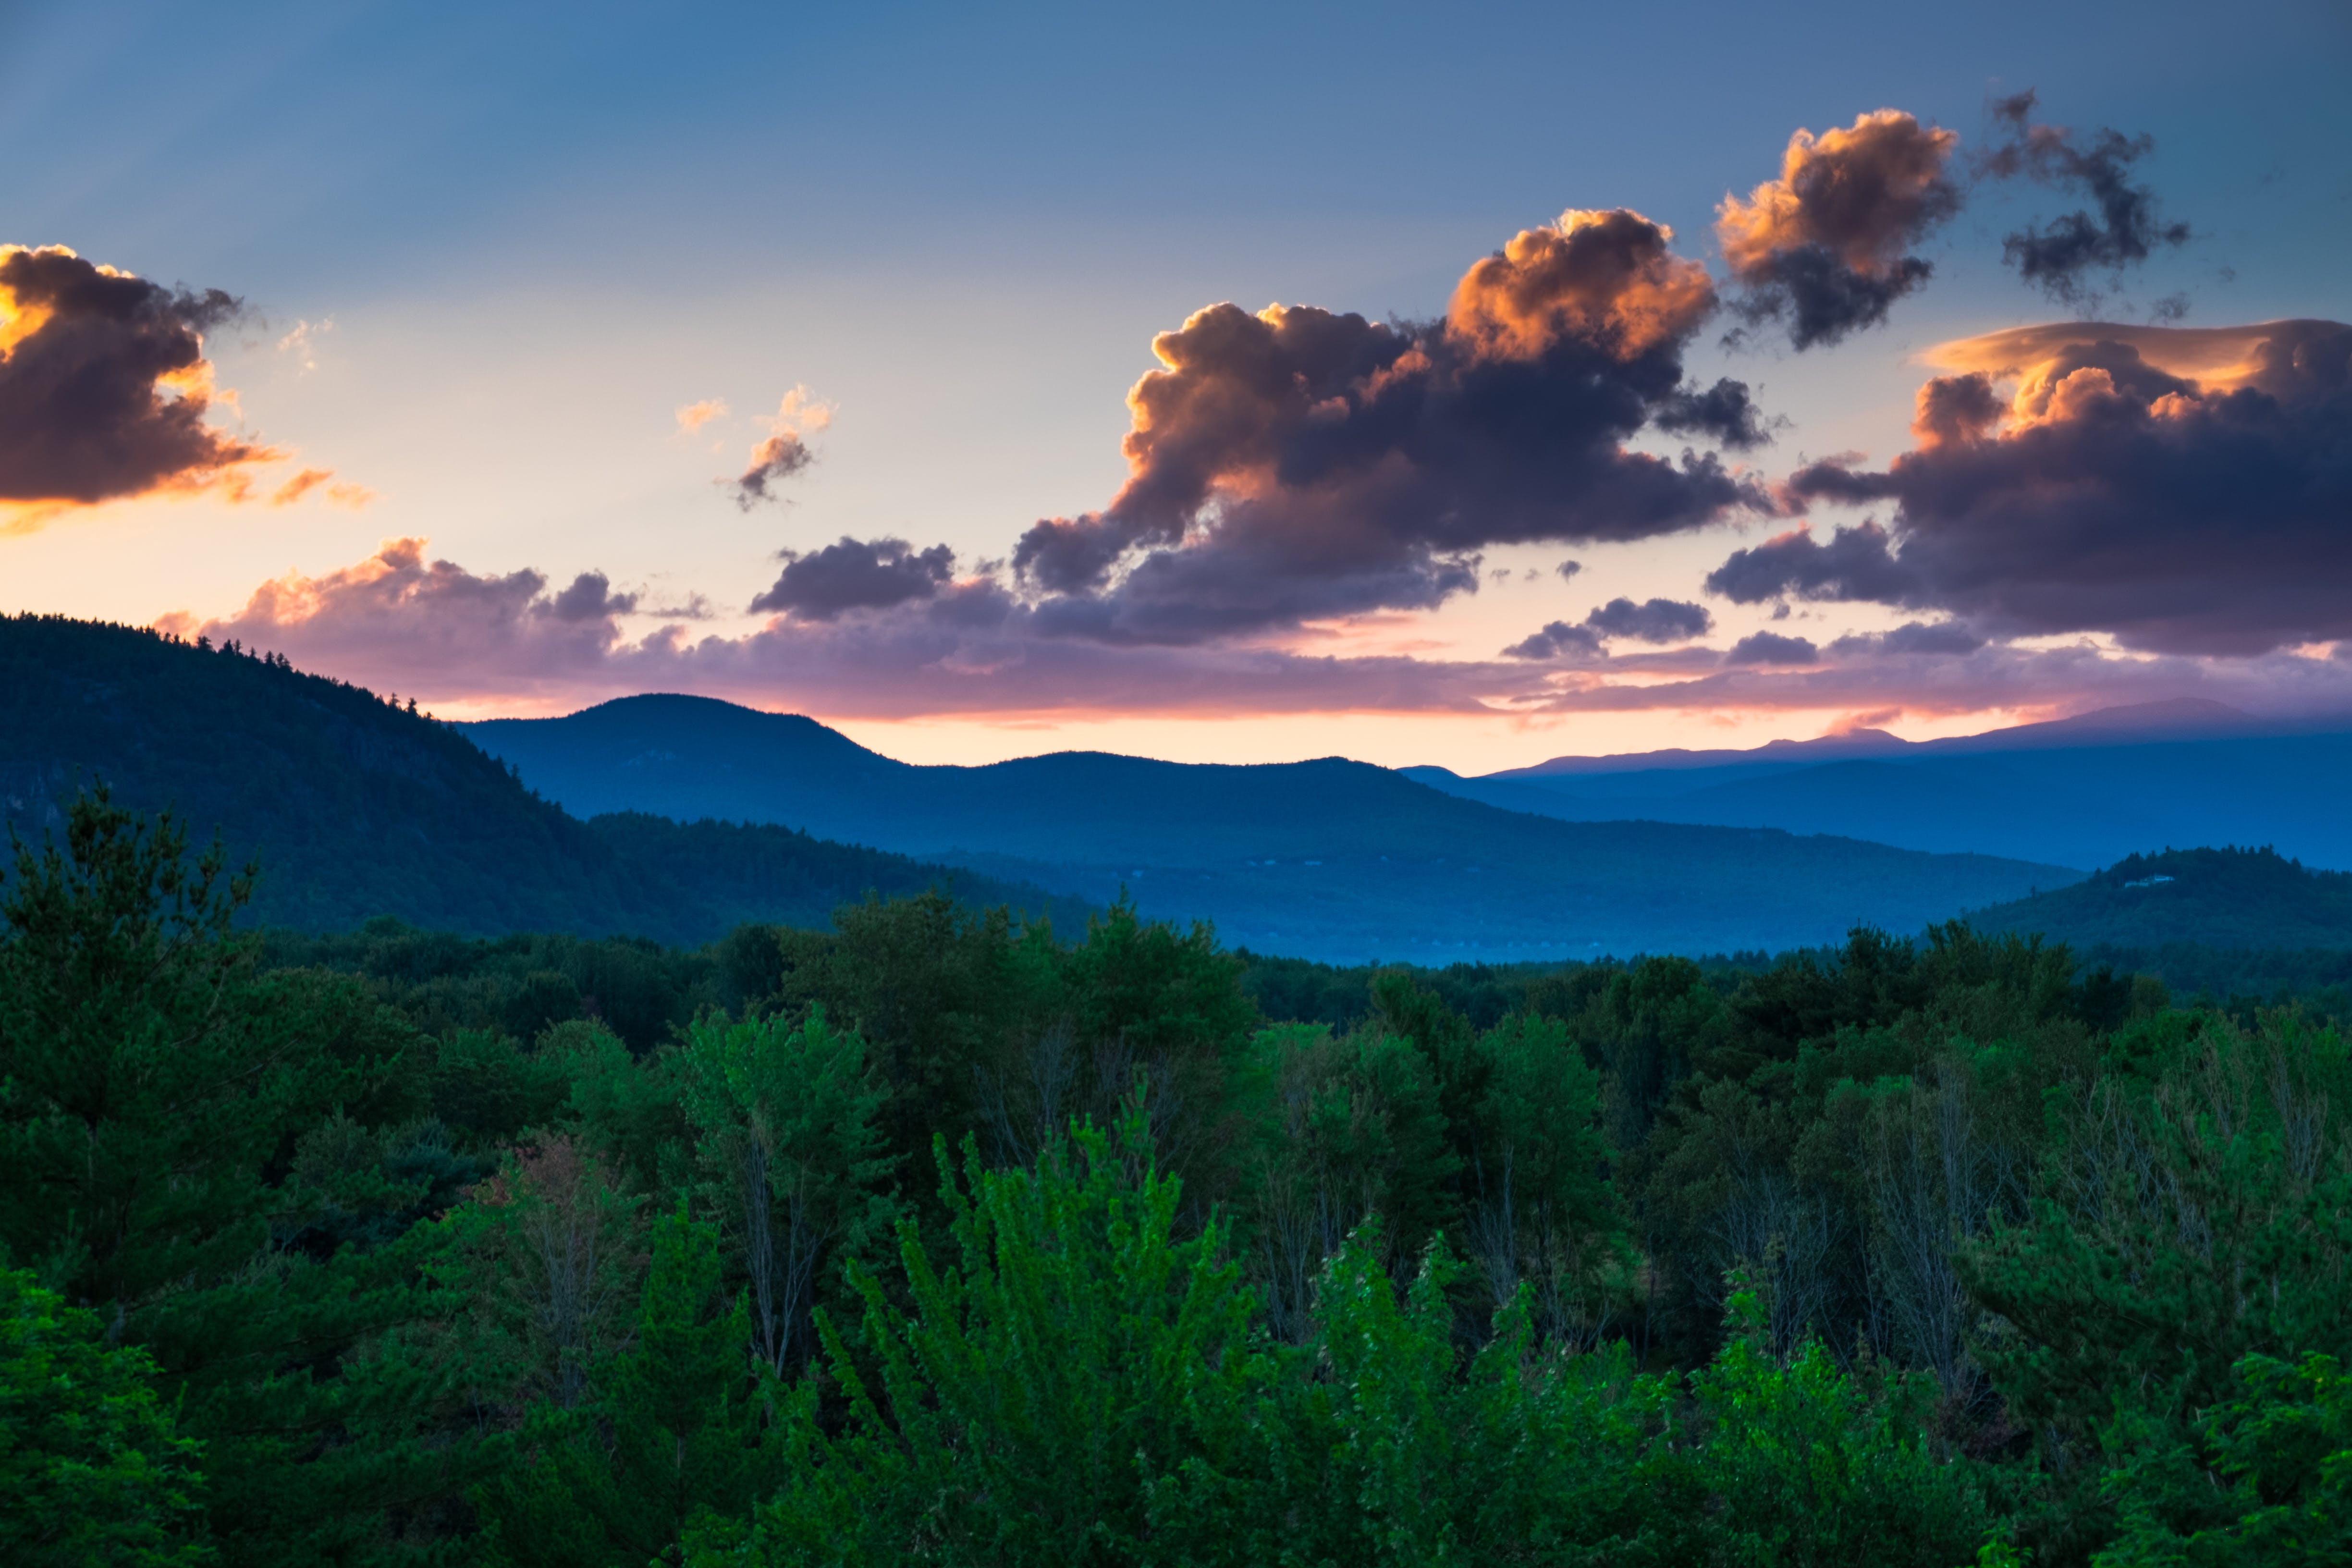 Free stock photo of blue mountains, colour, dramatic sky, evening sky